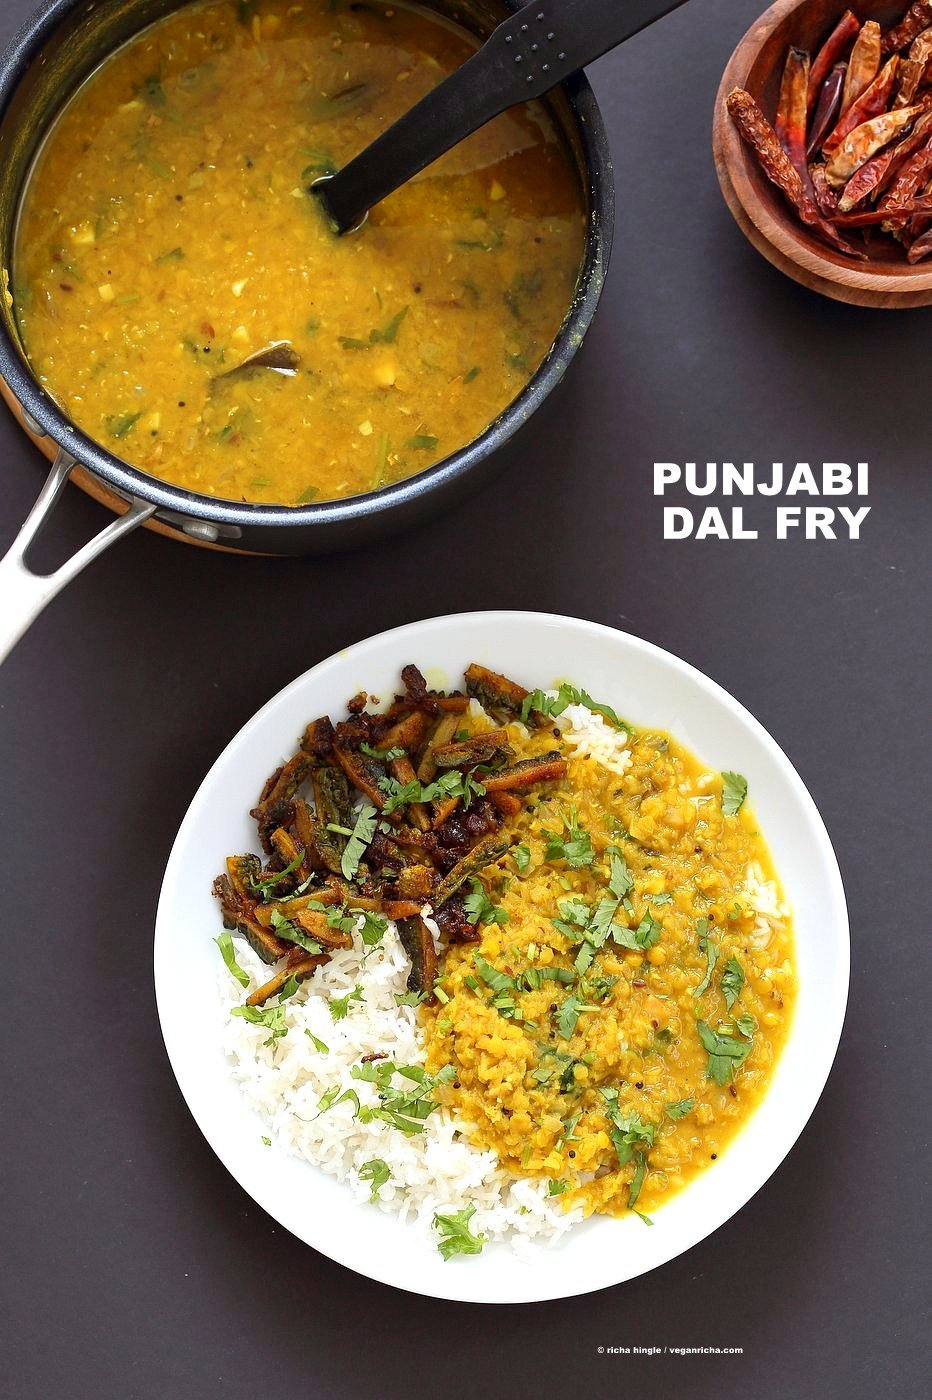 Punjabi Dal Fry Recipe Easy With Whole Spices And Garam Masala Lentil